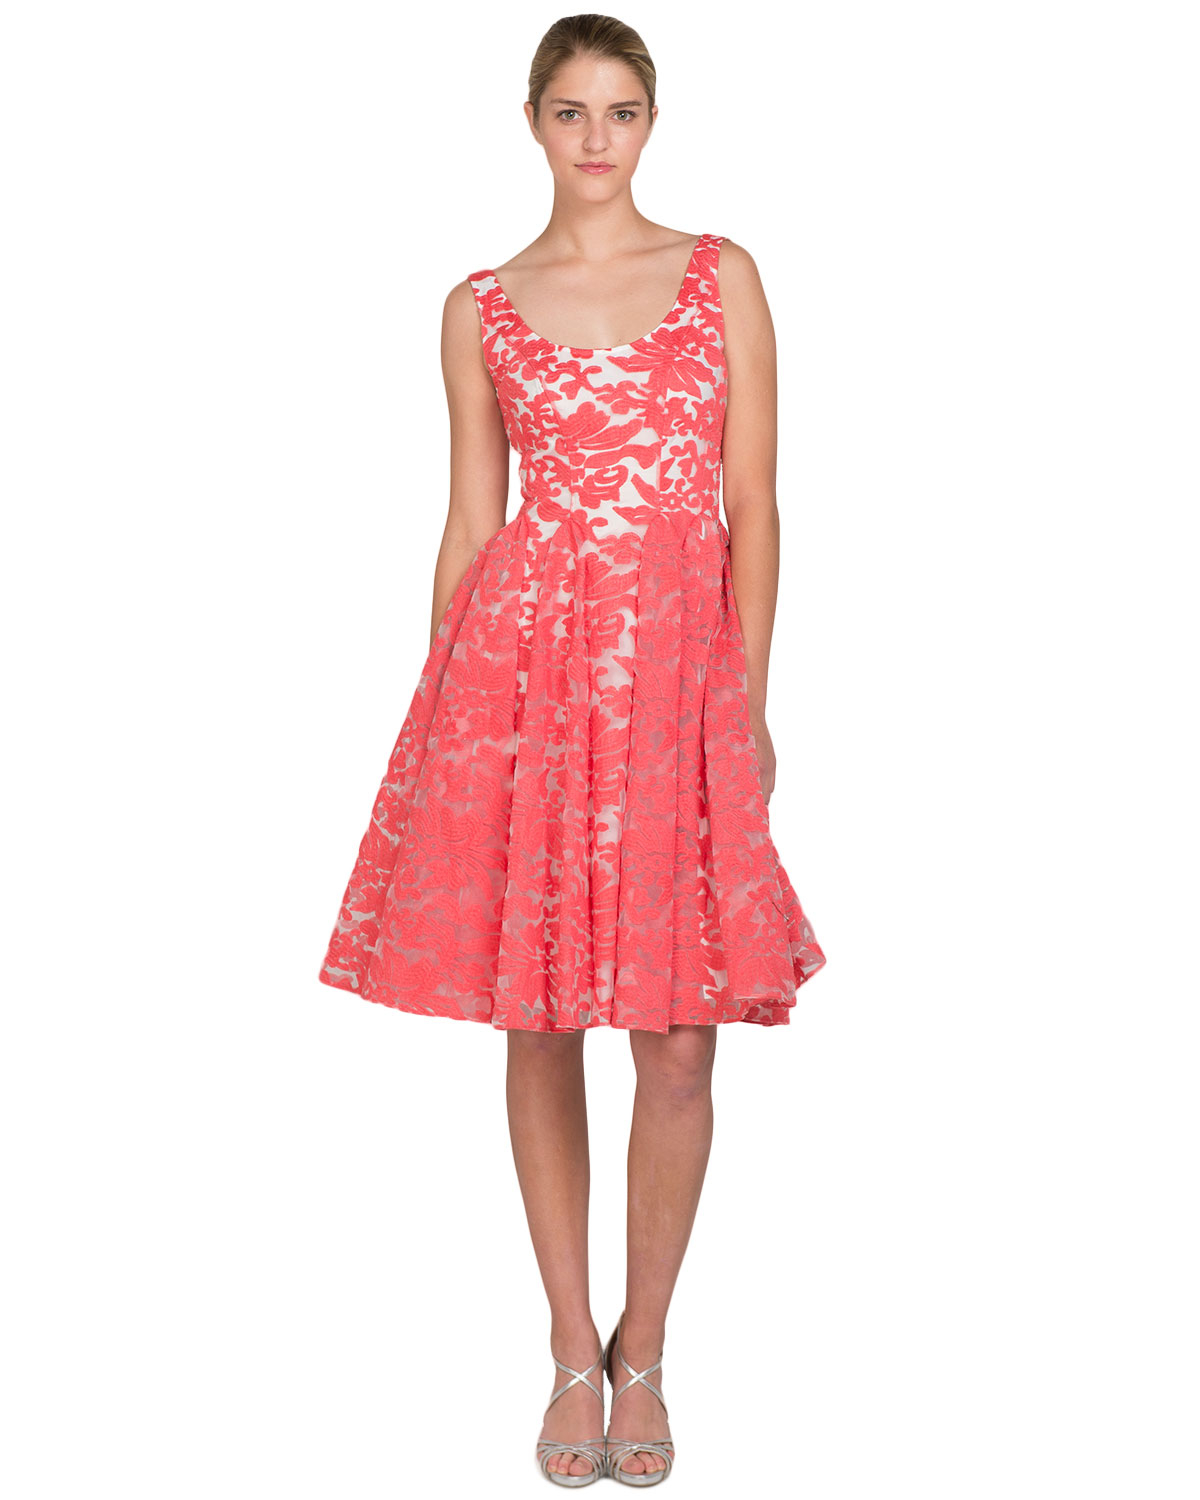 Badgley mischka Floral Godet Circle Skirt Dress in Pink | Lyst